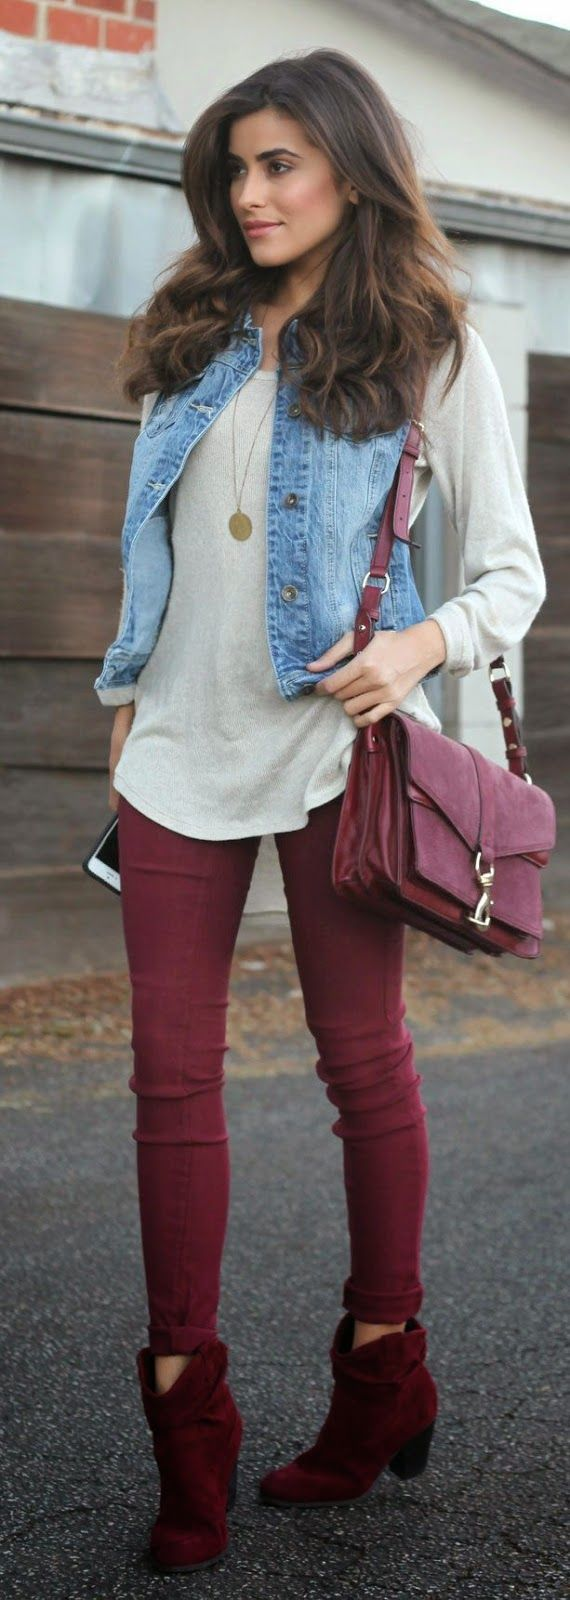 Fall Street Style Burgundy | About fashion | Burgundy skinny jeans, Burgundy pants, Vest outfits